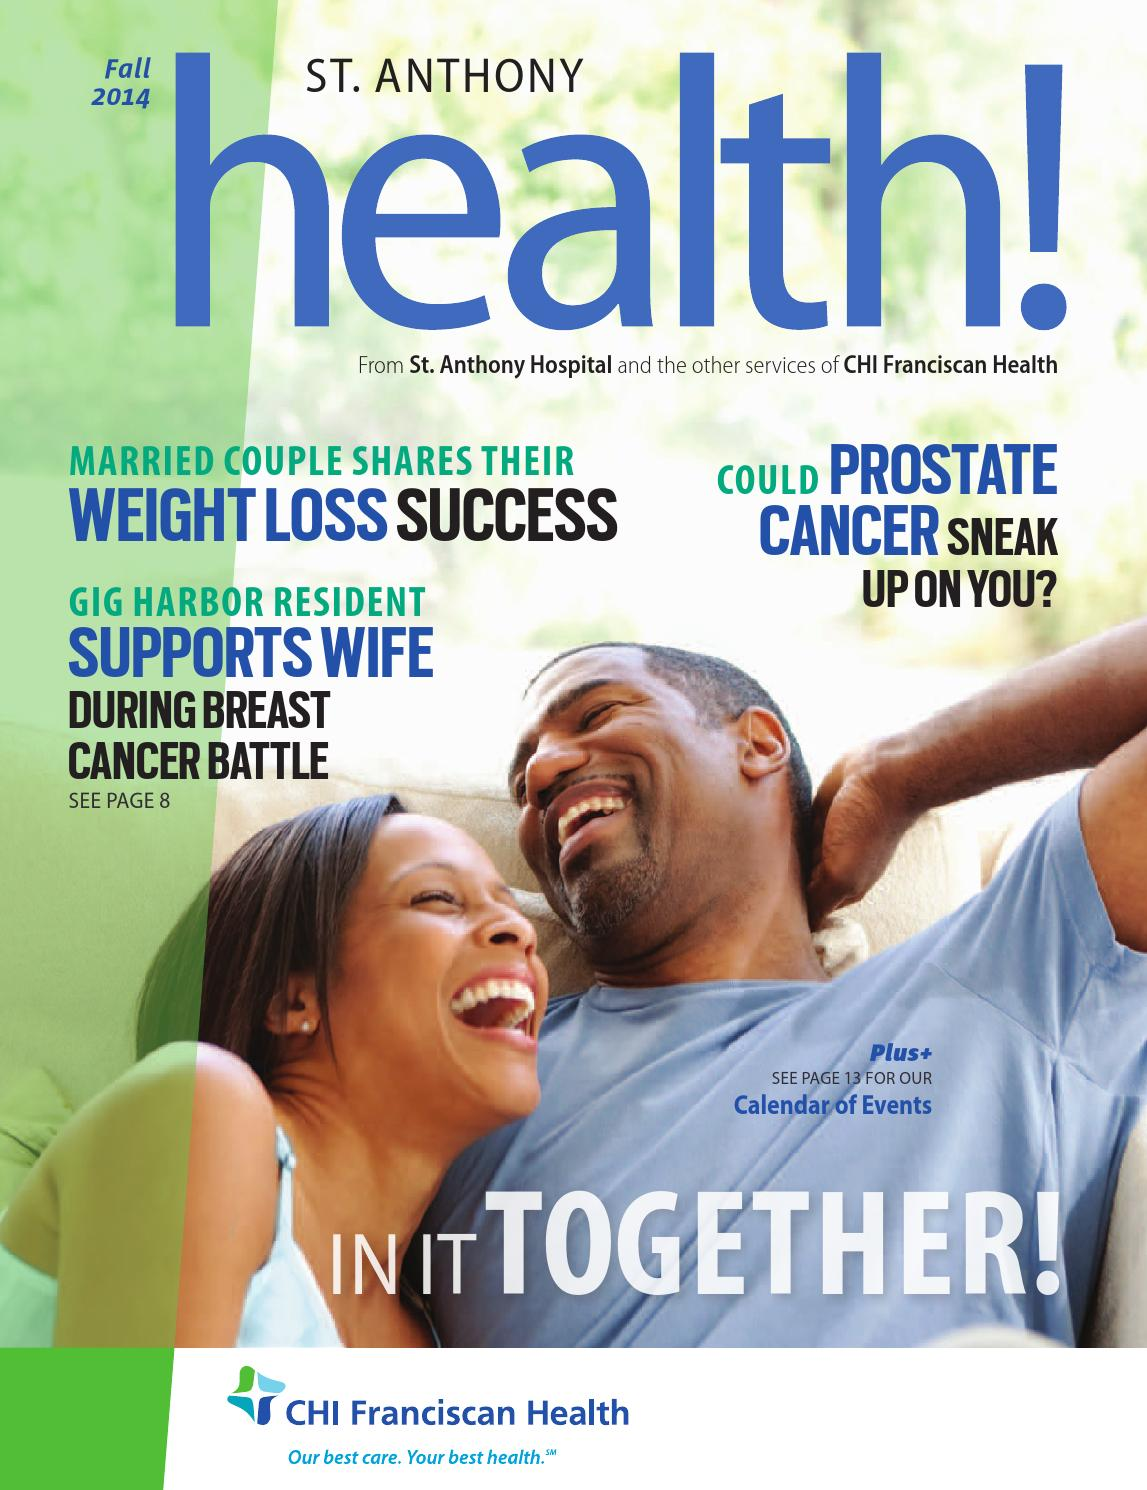 St. Anthony health! - Fall 2014 by CHI Franciscan - Issuu